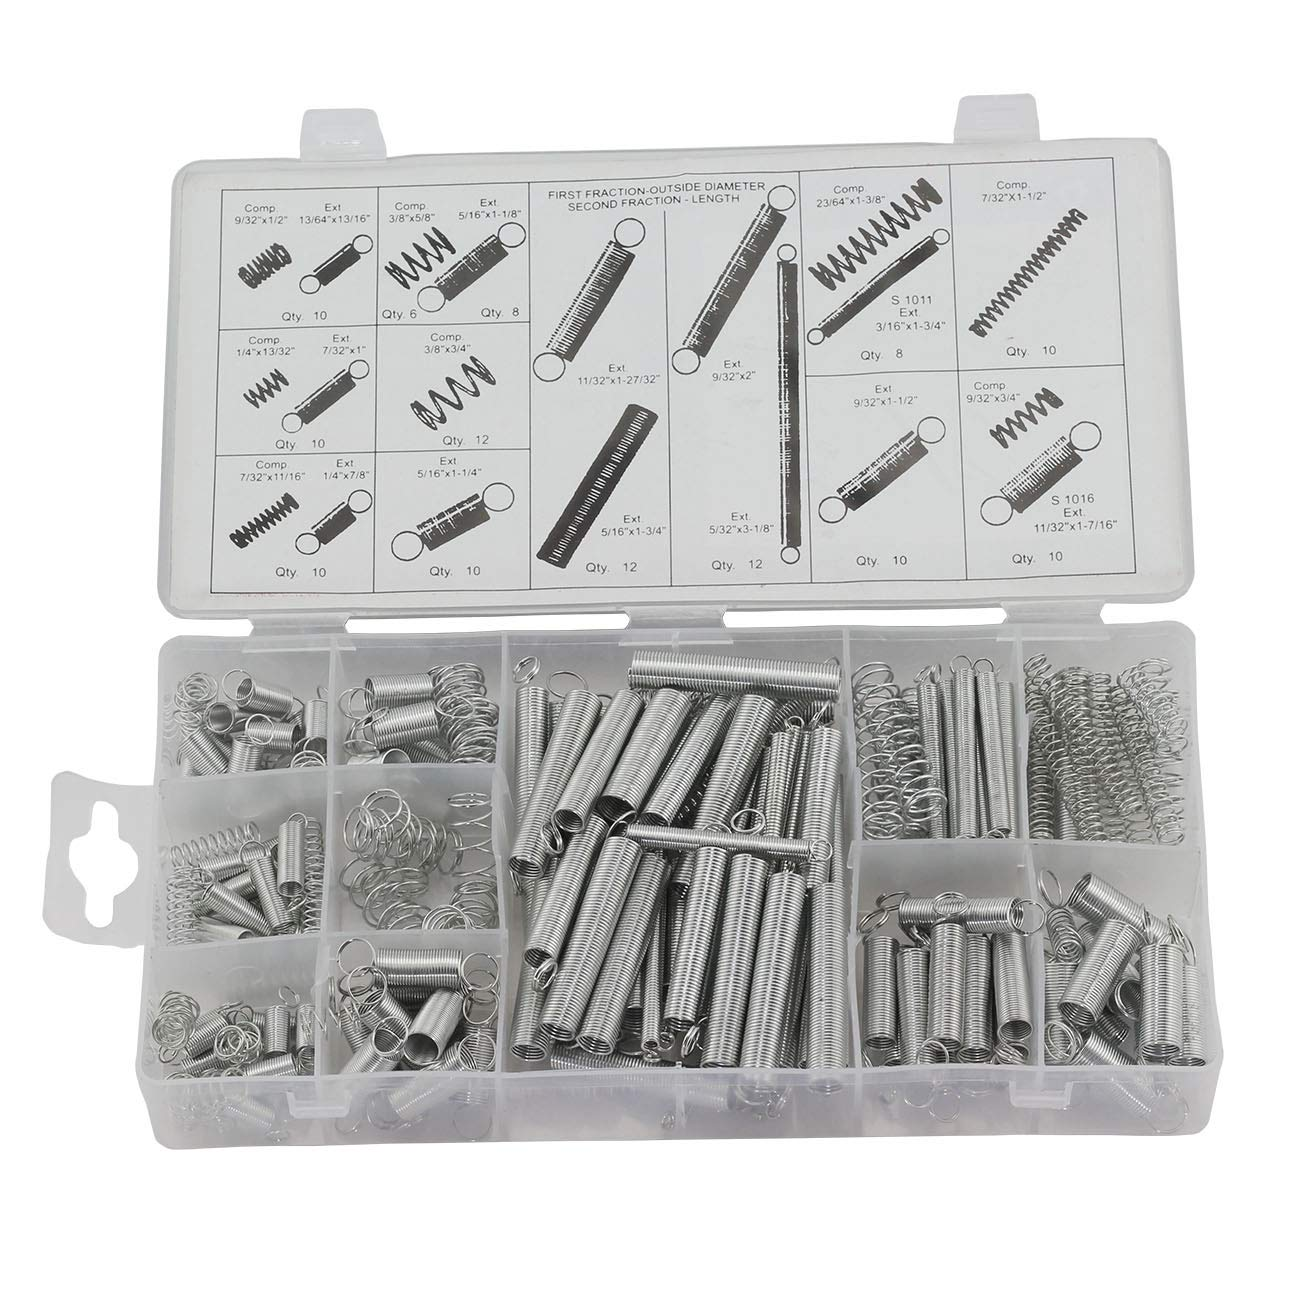 ZYAMY 200pcs 20 Sizes Spring Assorted Kit Metal Electrical Hardware Drum Extension Tension Springs Extended and Compressed Spring Assortment